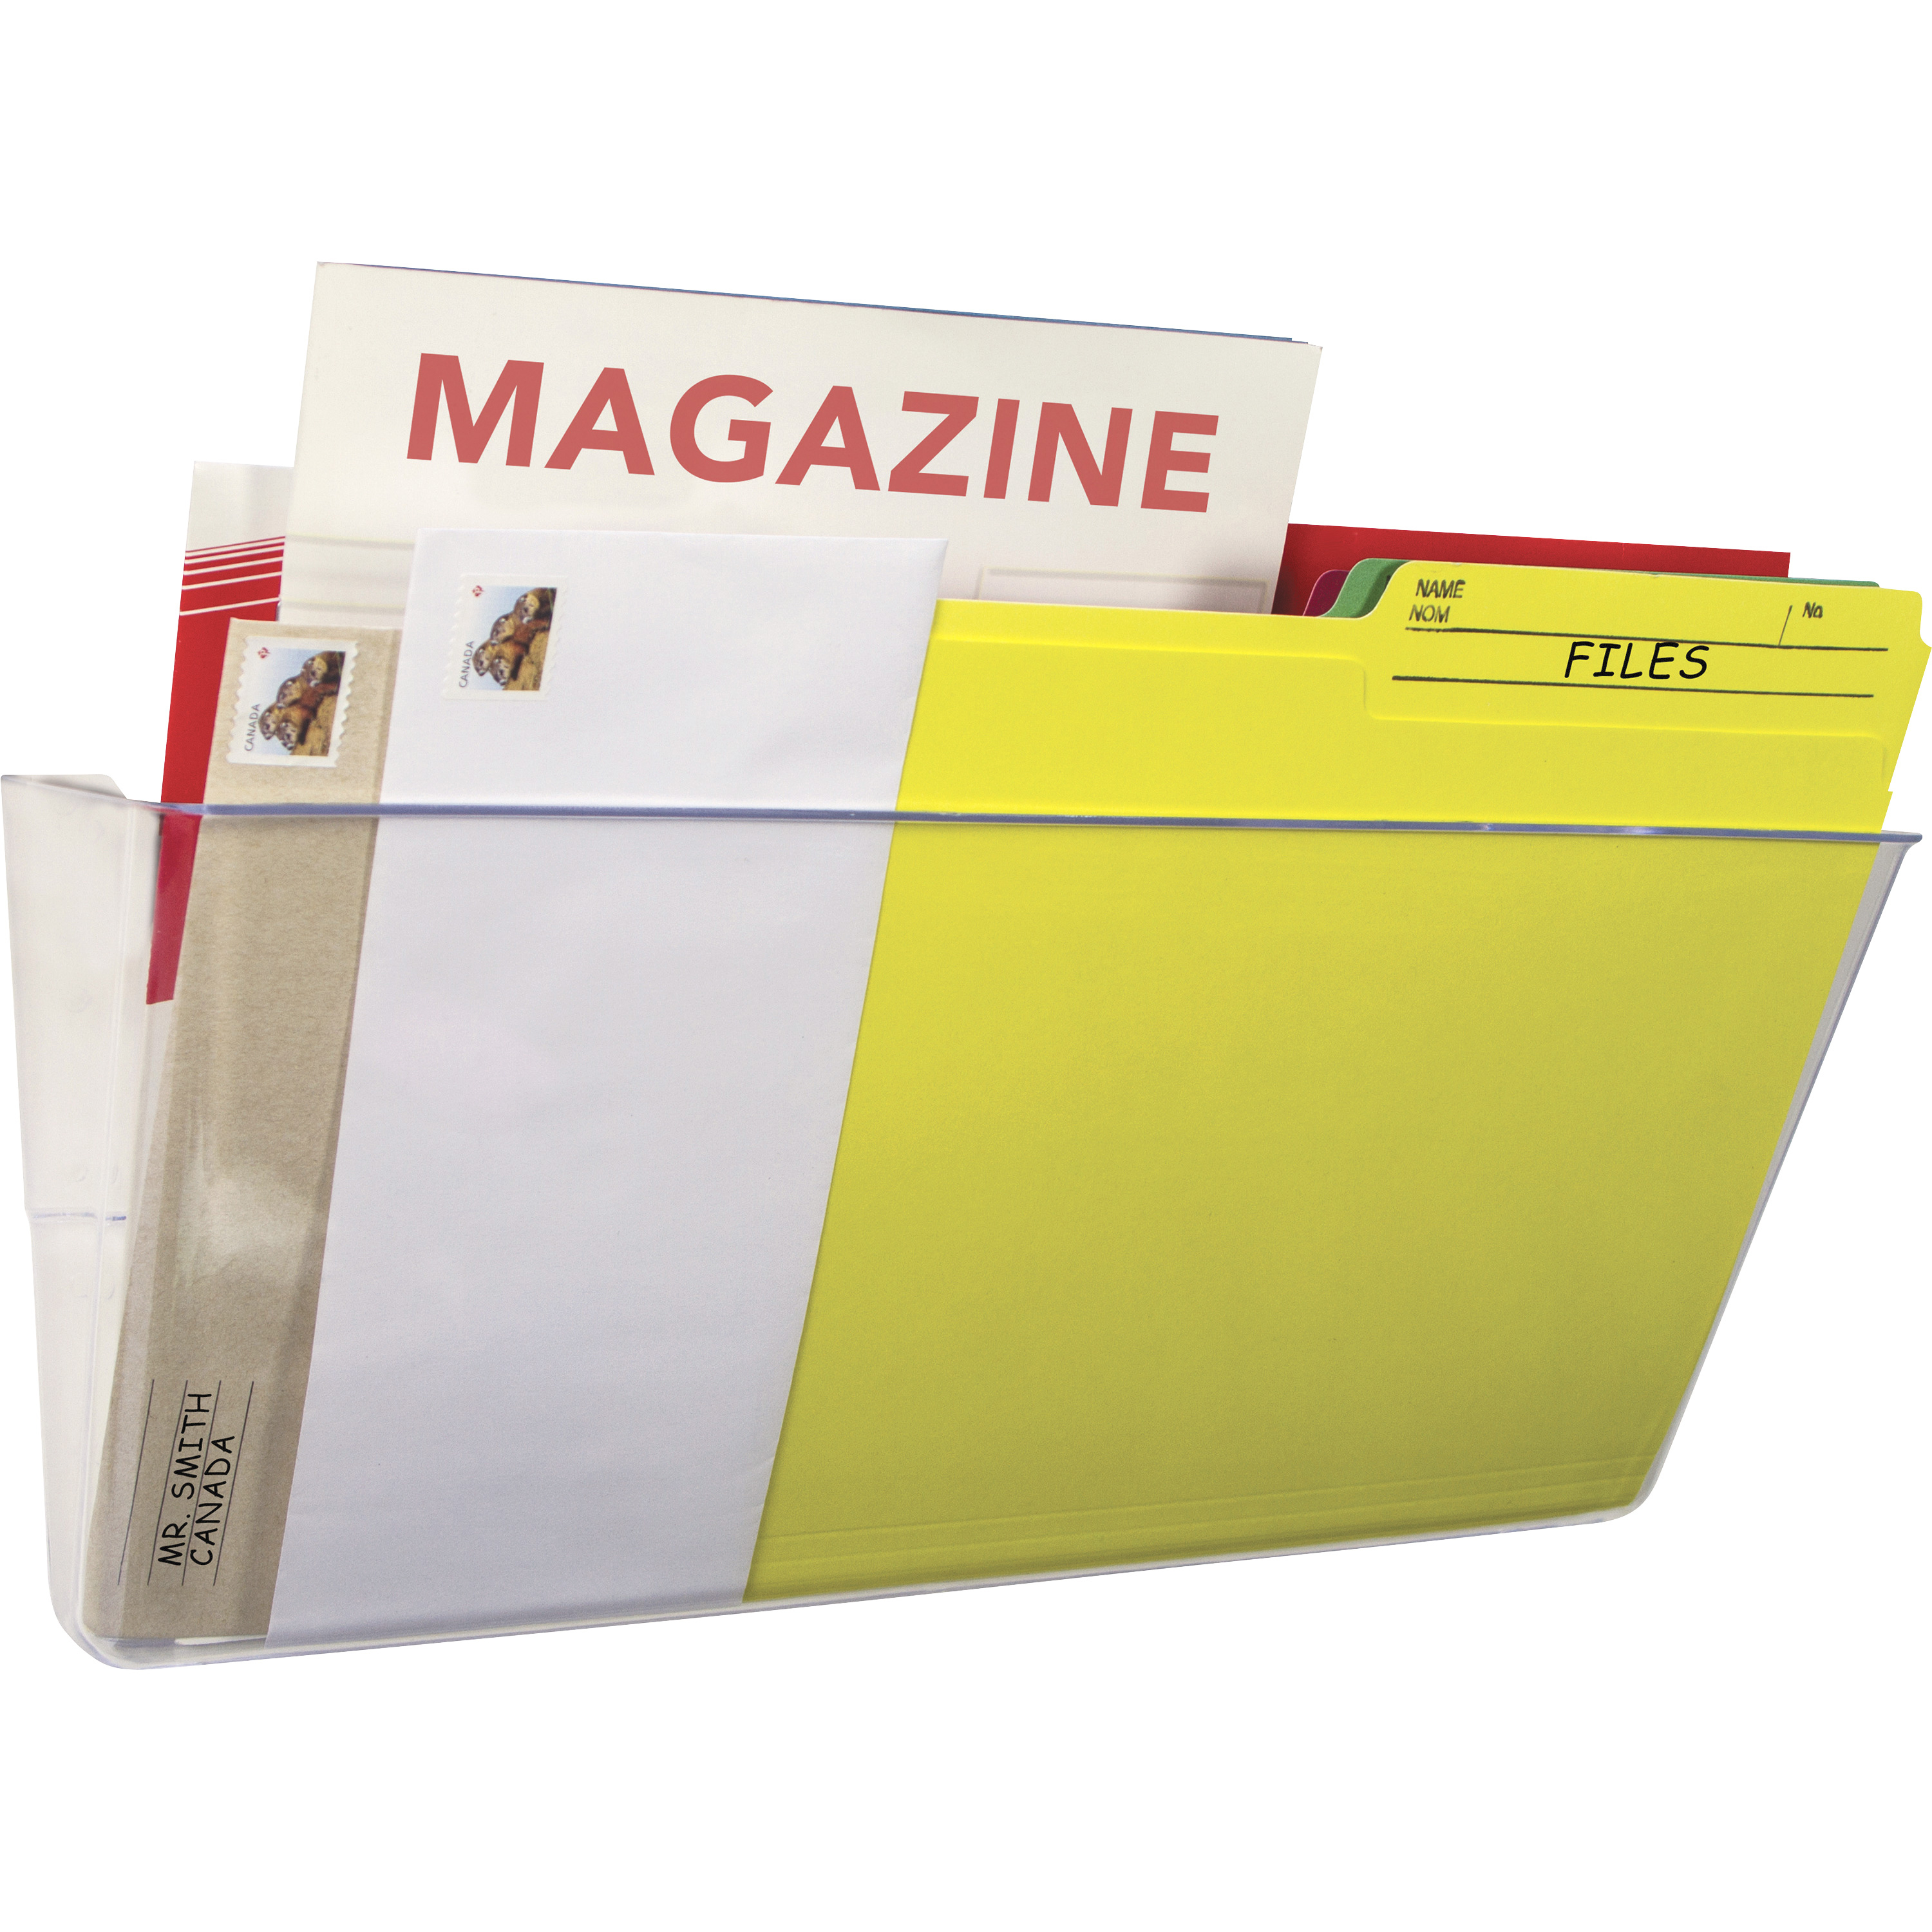 Shop for Wall Files, Pockets & Accessories, Wall Organizers and More ...